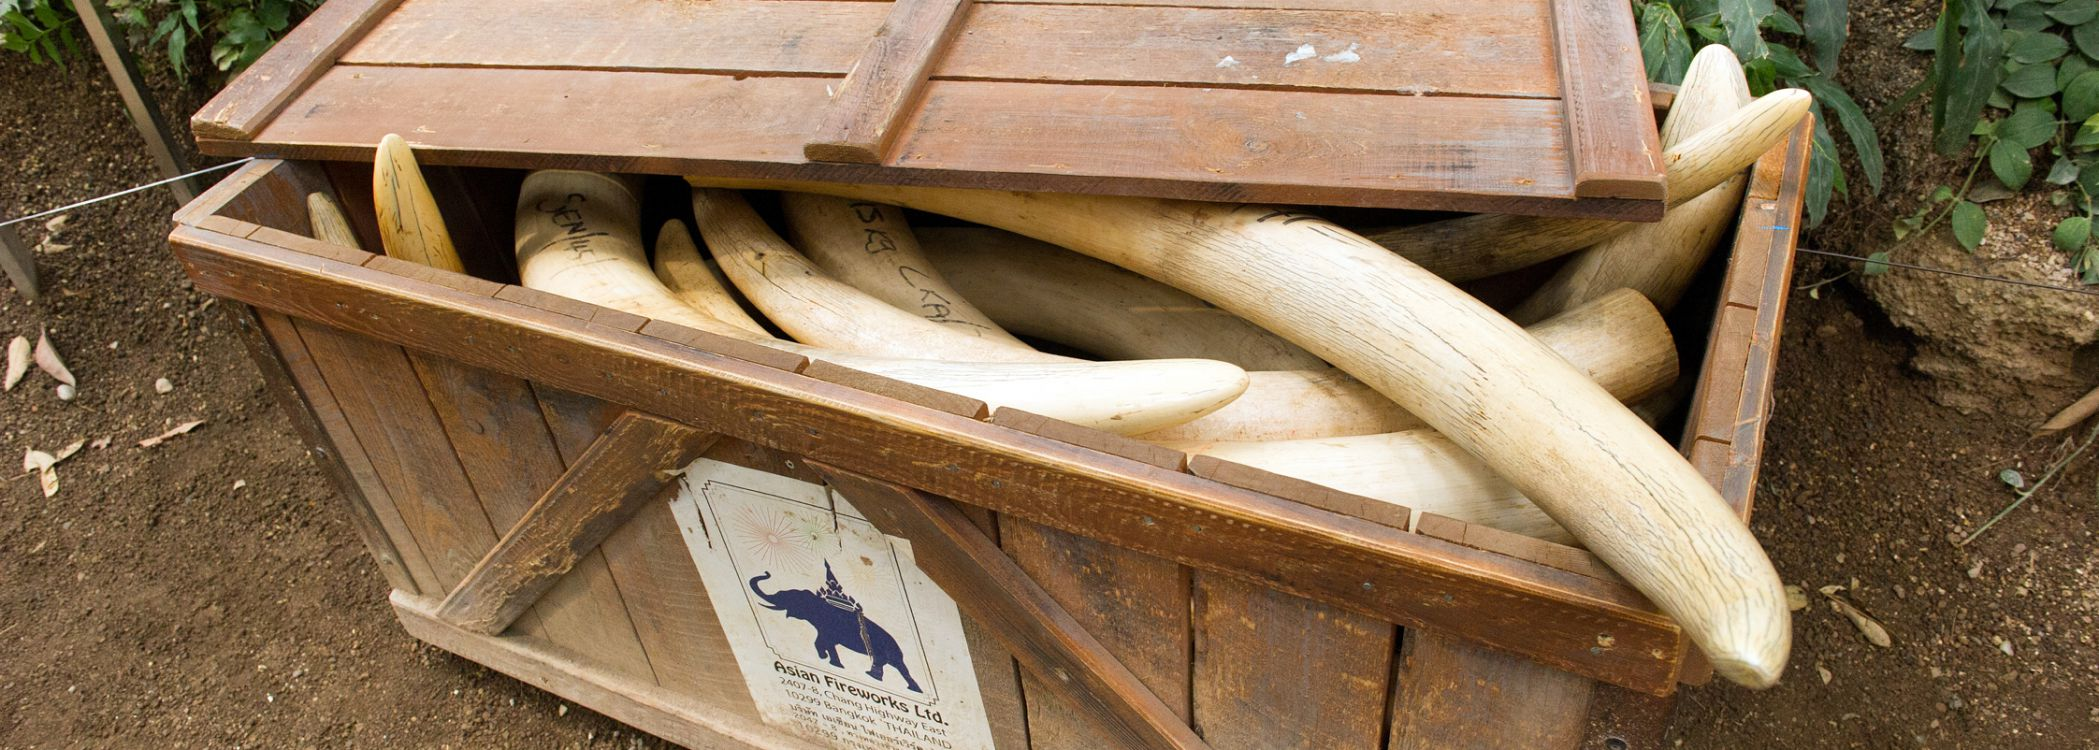 ivory smuggling